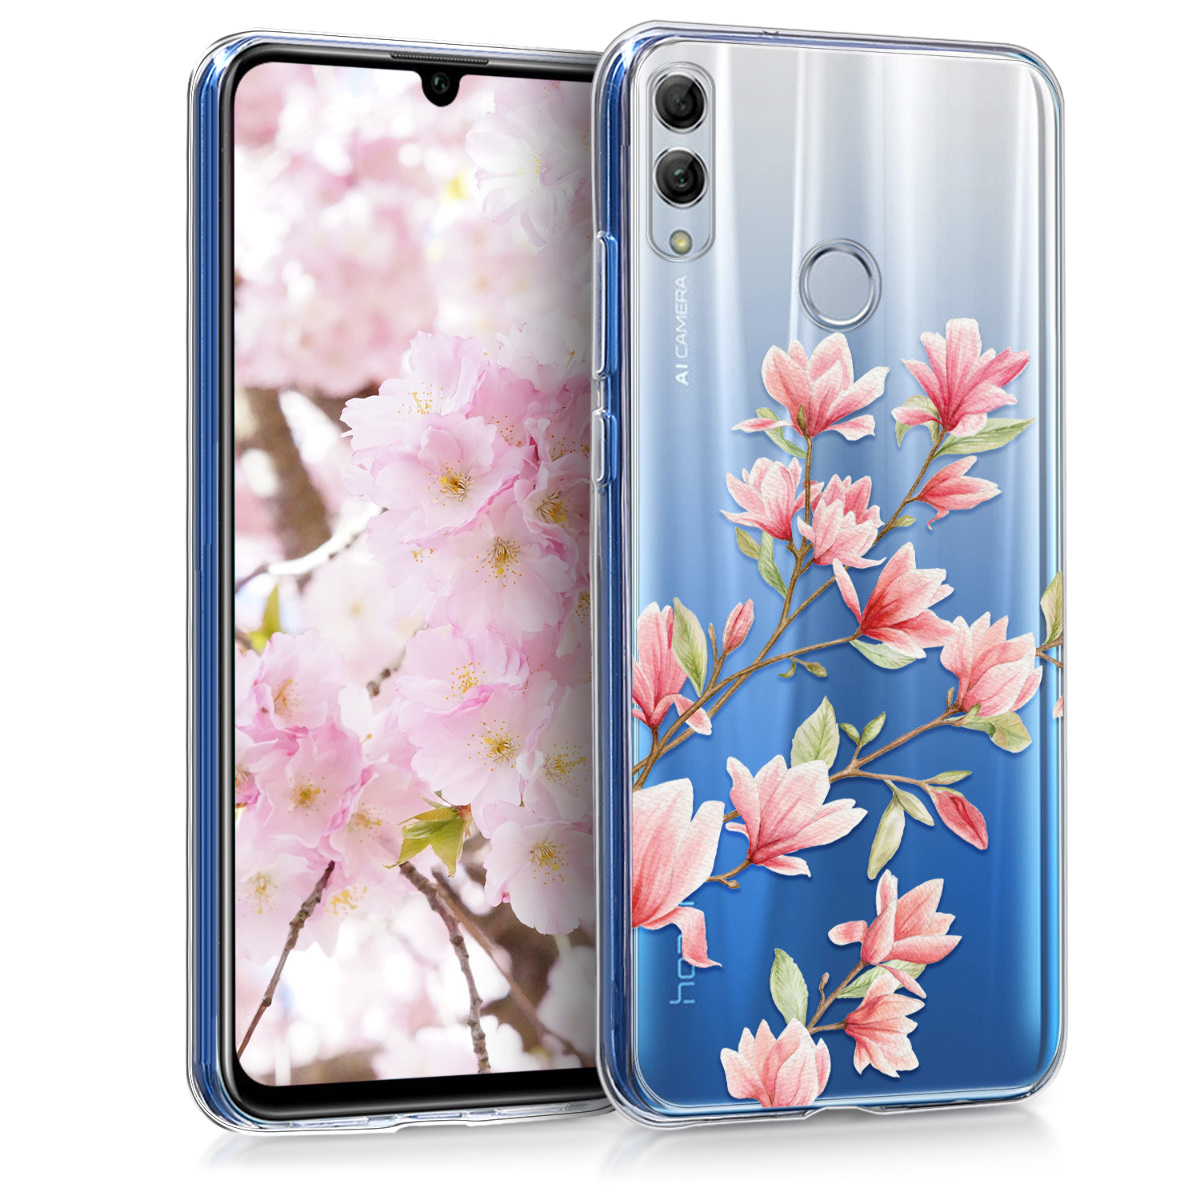 KW Θήκη Σιλικόνης Huawei P Smart 2019 - Magnolias Light Pink White (47003.01)